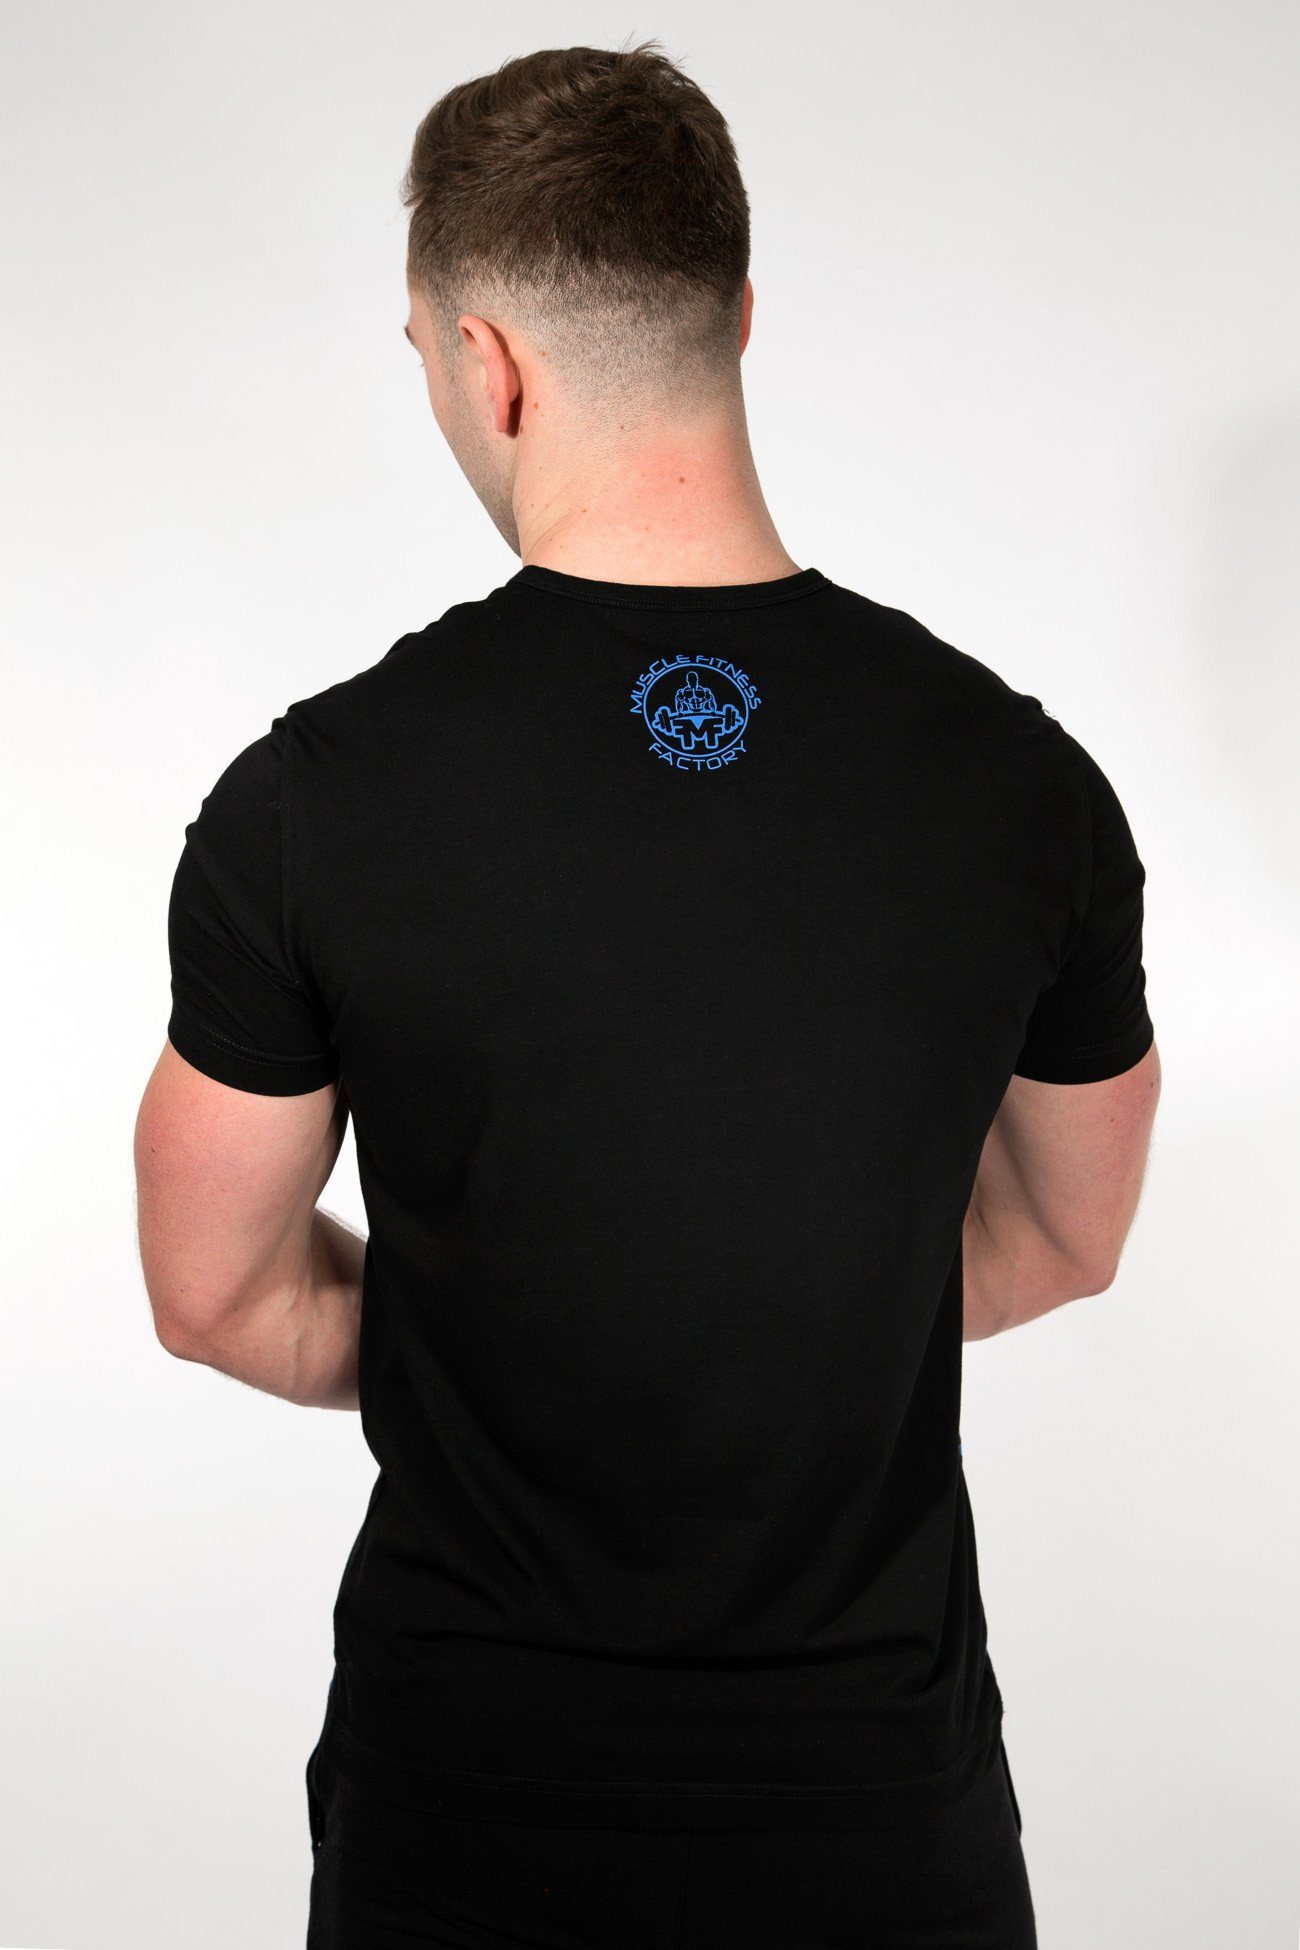 MFF Spartan T-Shirt <br> Black/Blue - Muscle Fitness Factory